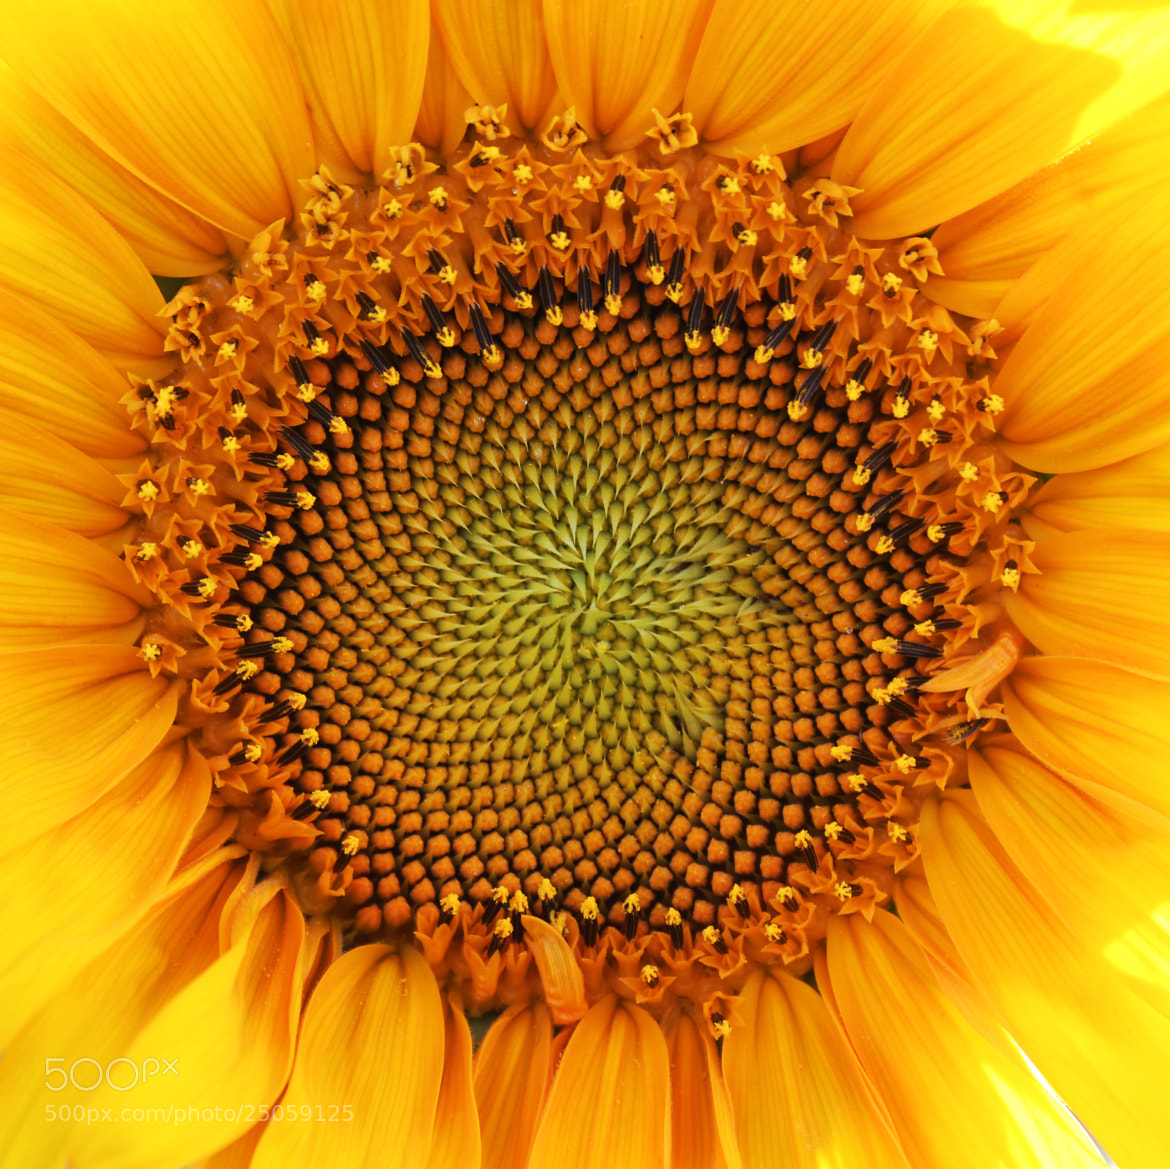 Photograph If the sun was a flower! by Eddie K on 500px